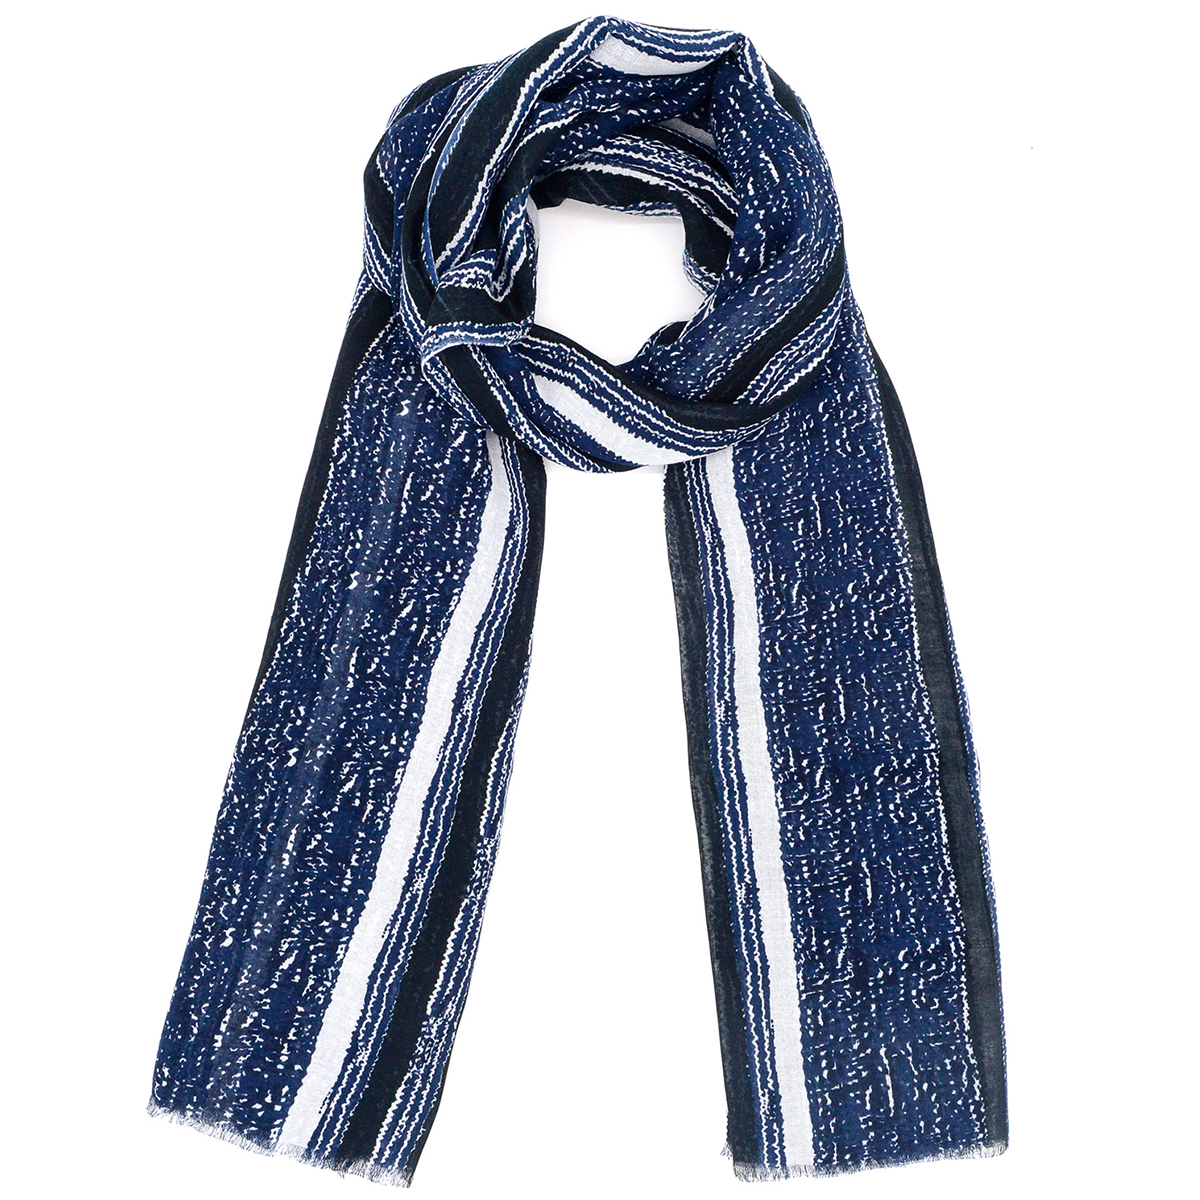 Indigo stripe cotton scarf